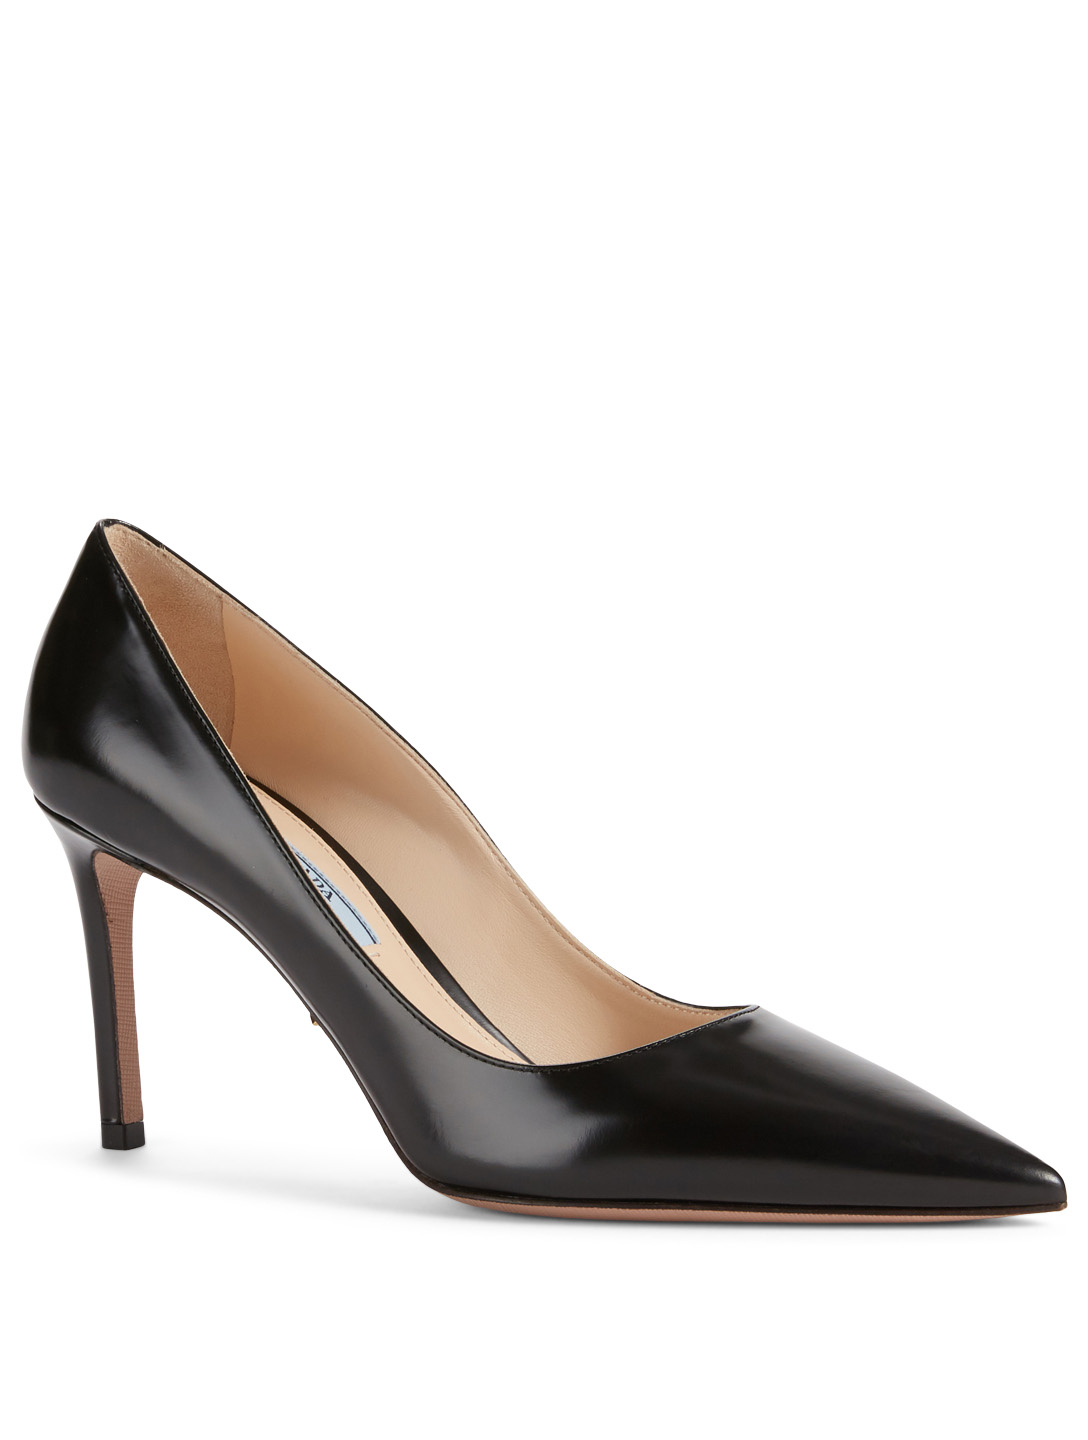 PRADA Spazzolato Leather Pumps Womens Black